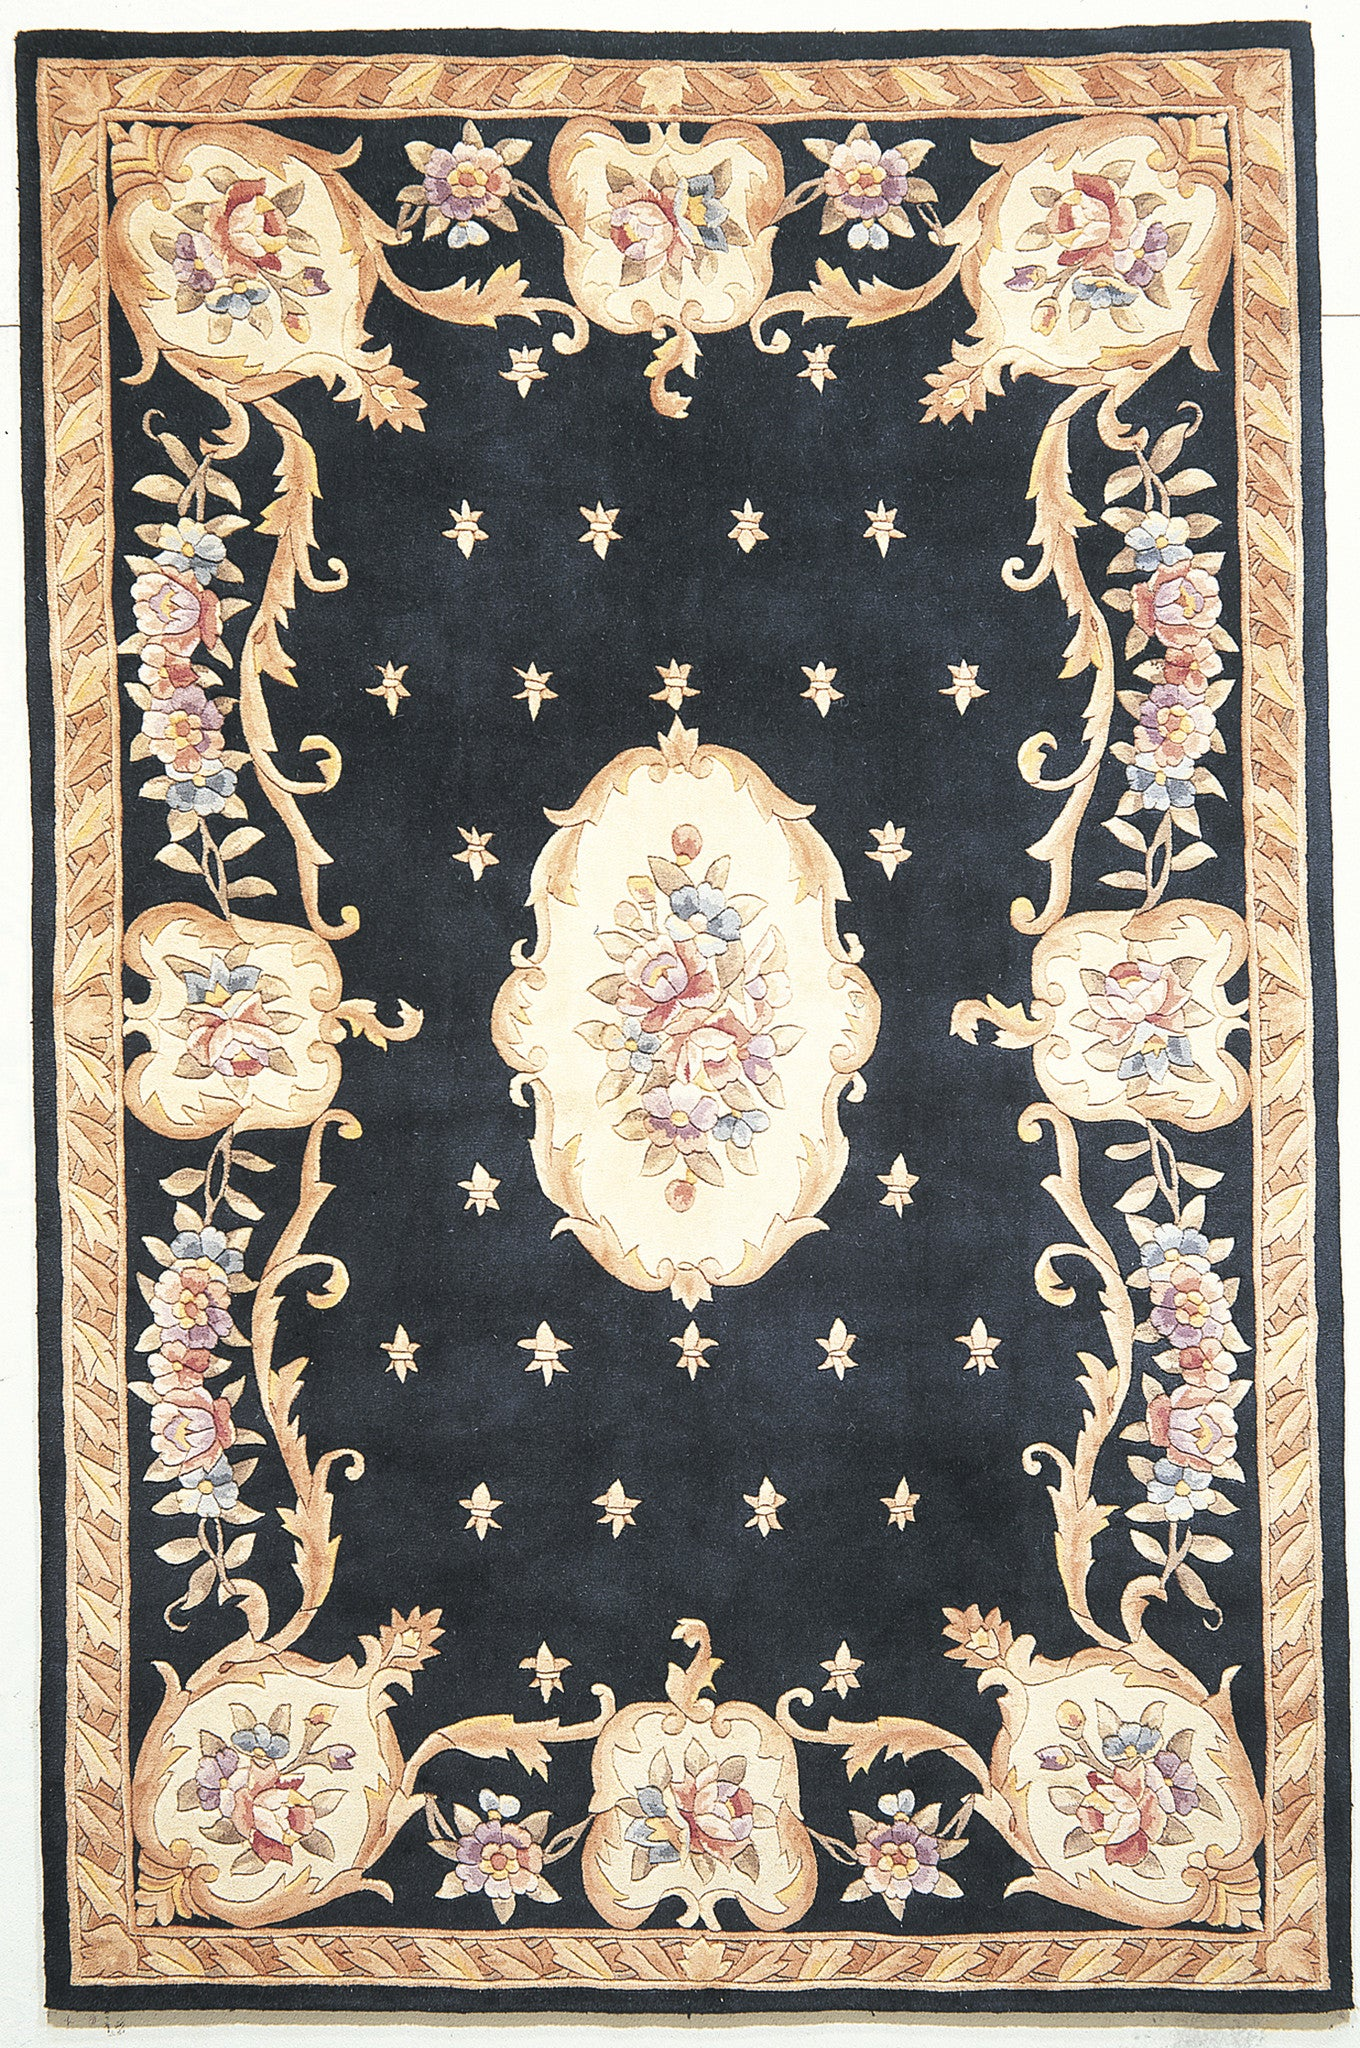 KAS Ruby 8901 Black Fleur-De-Lis Aubusson Hand Tufted Area Rug